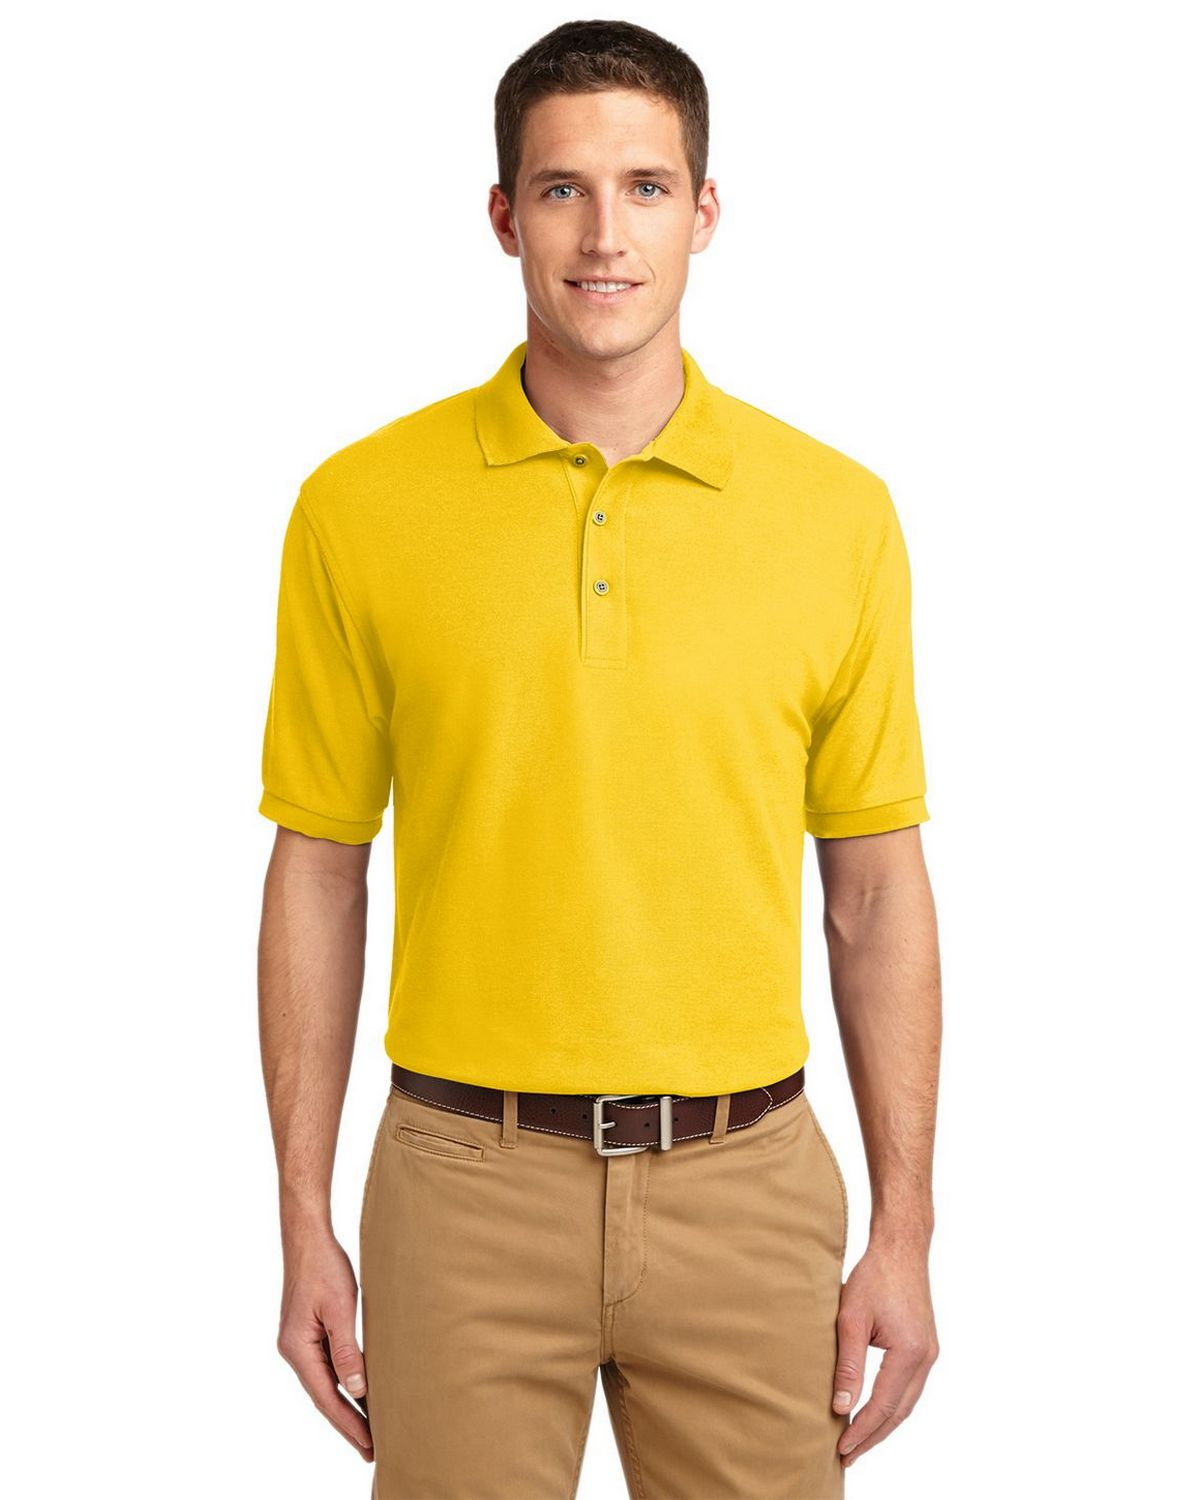 Port Authority K500 Men's Silk Touch Polo - Sunflower Yellow - XS #silk